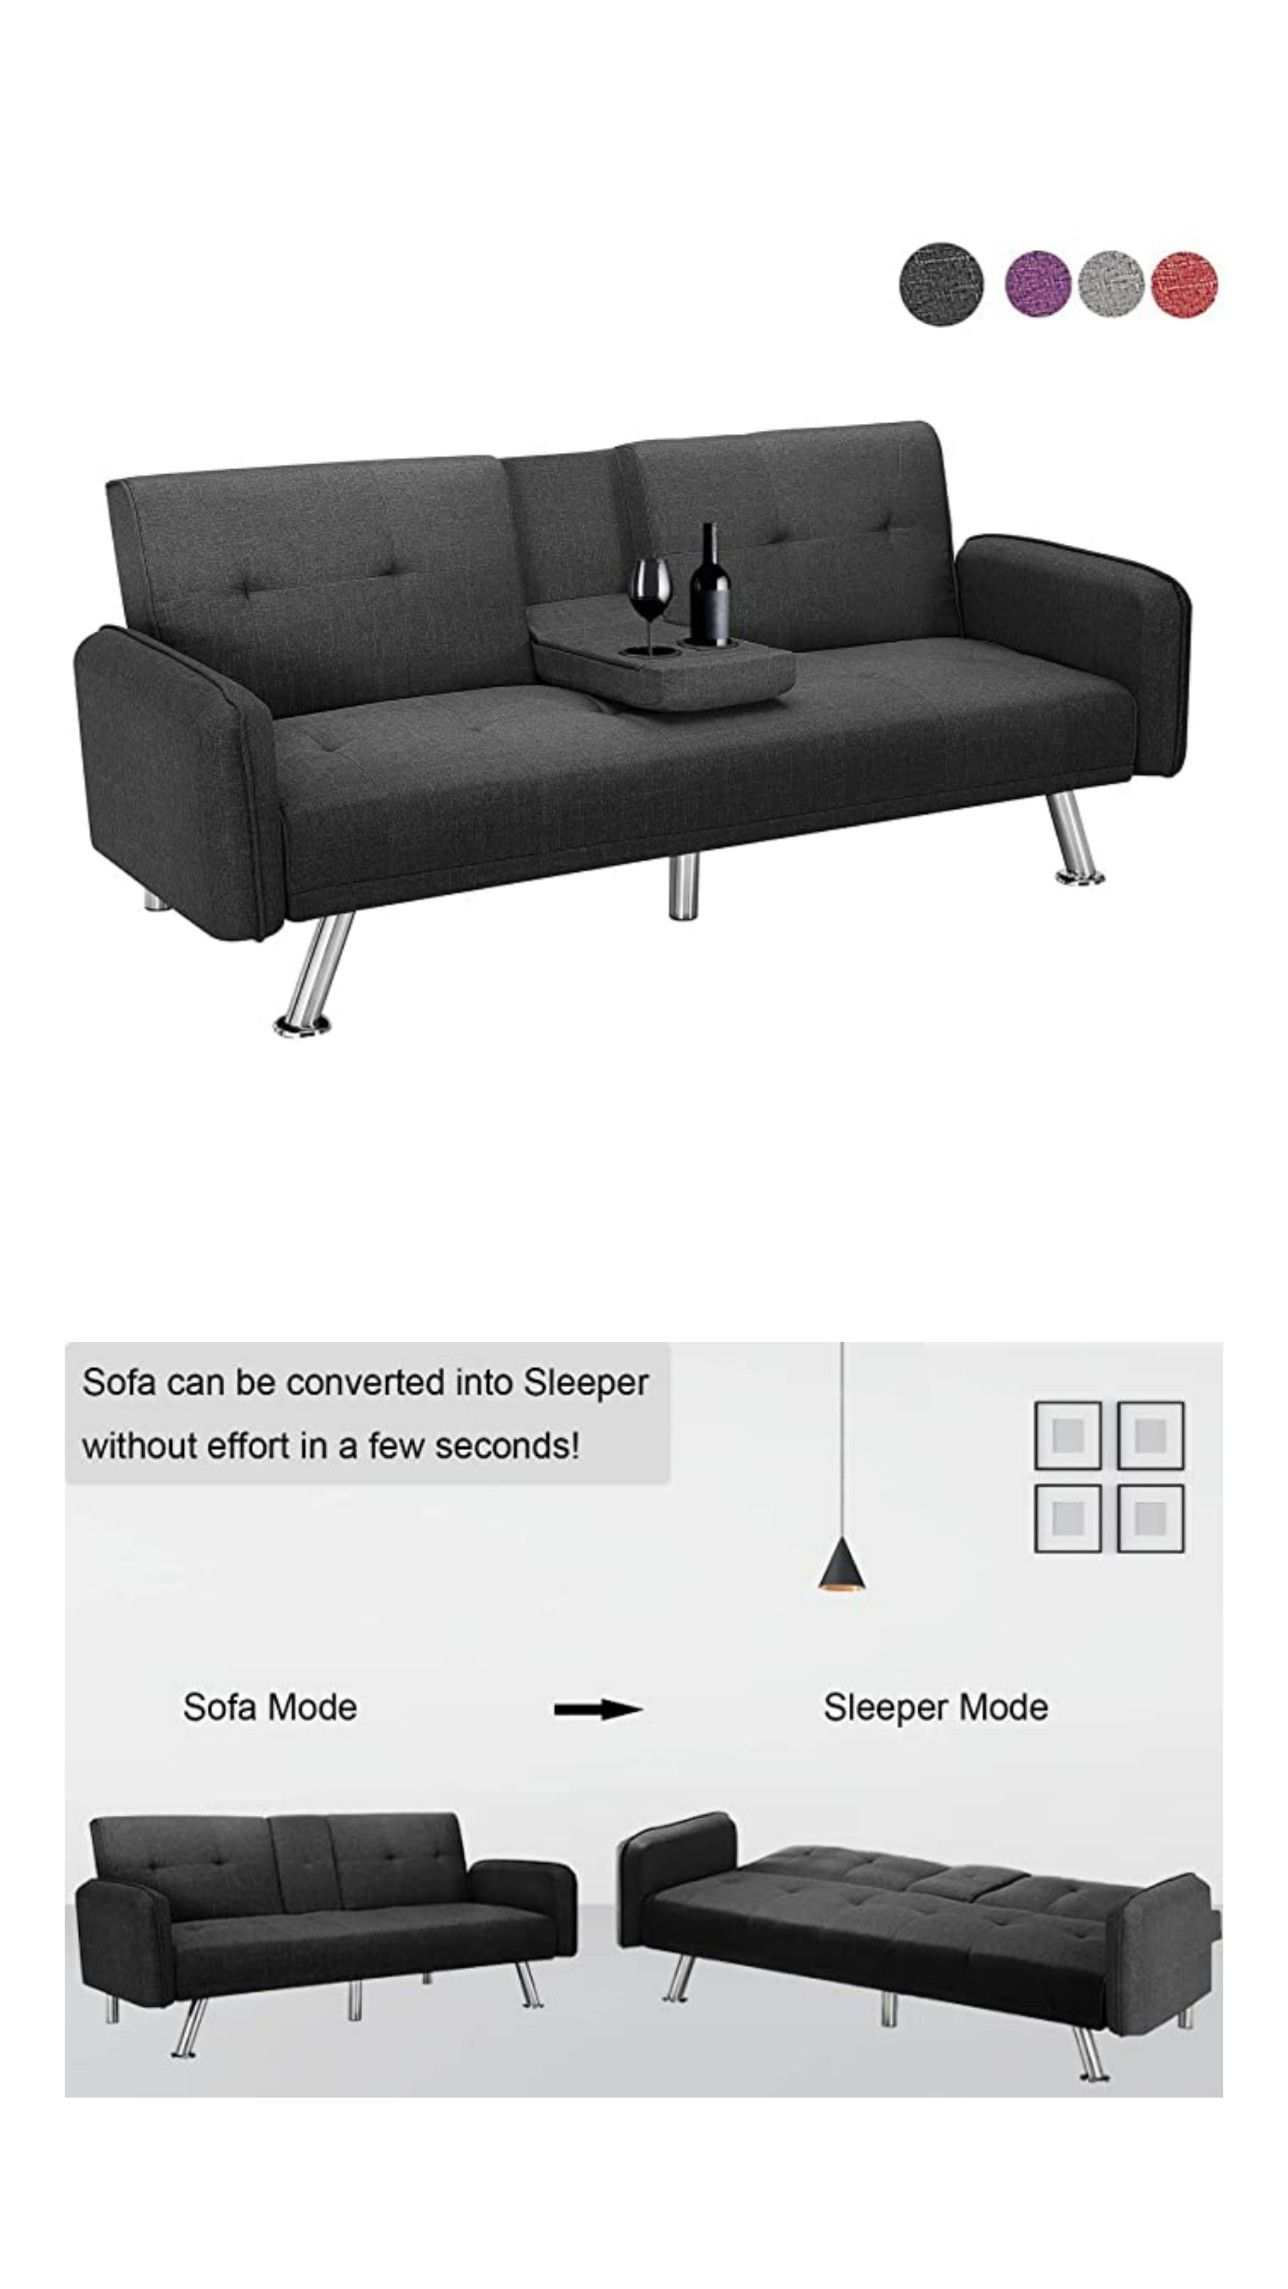 Futon Sofa Bed Modern Convertible Couch Sleeper Sofa With Armrest And Metal Legs Twin Size Folding In 2020 Couch Comfortable Futon Sofa Bed